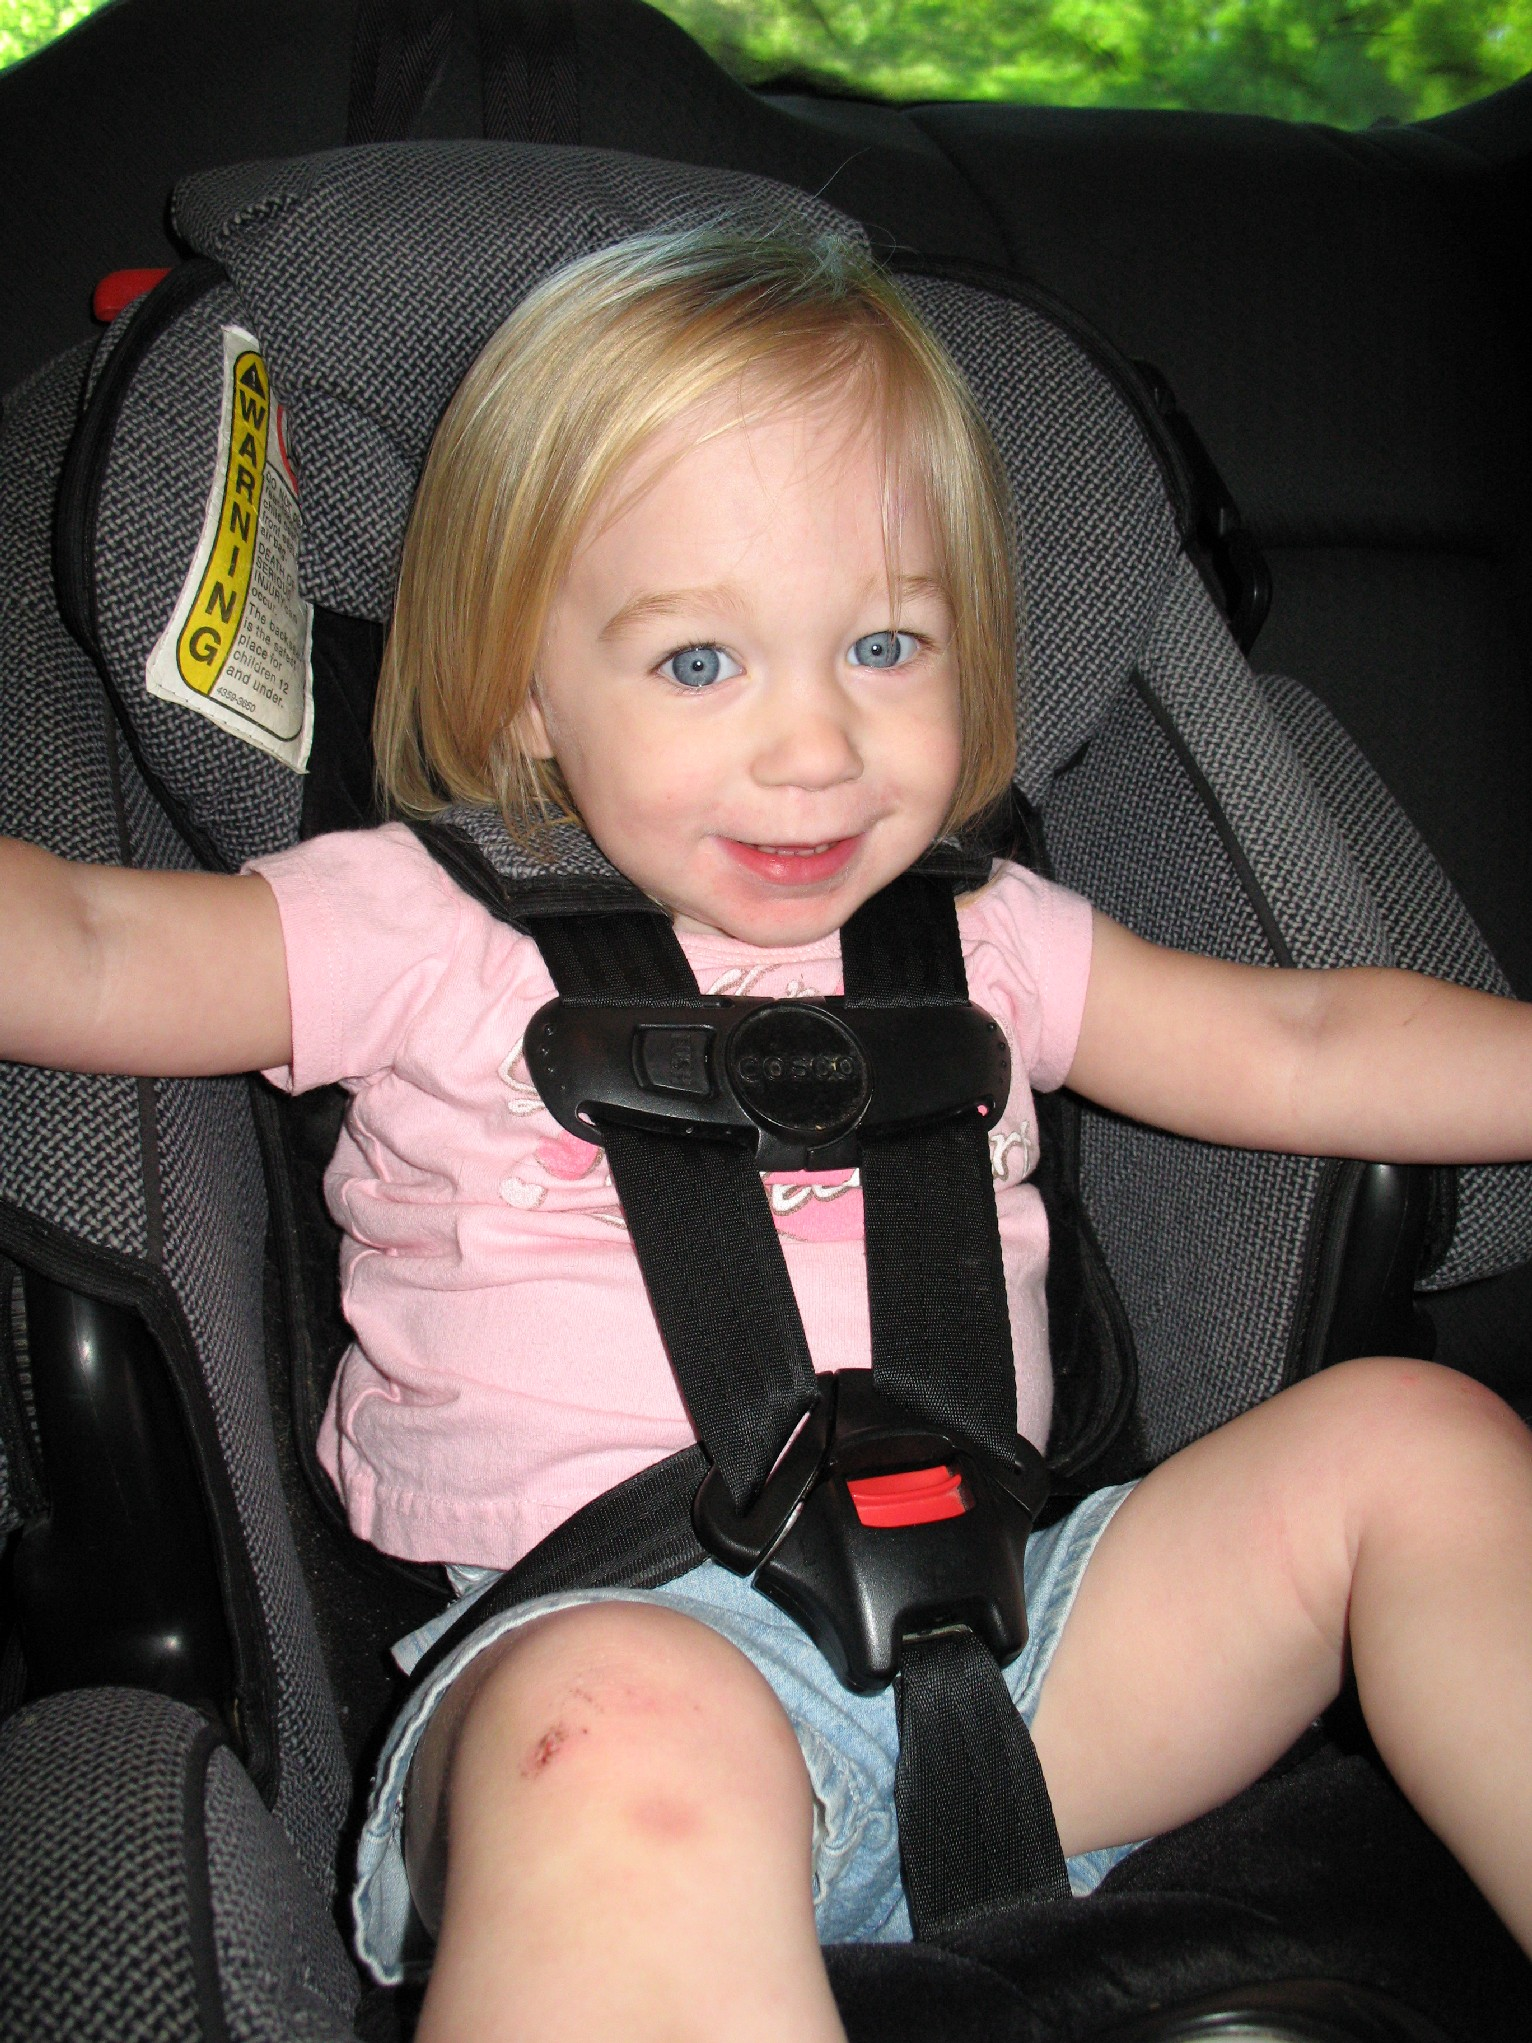 Current data makes it clear: child safety seats and booster seats ...